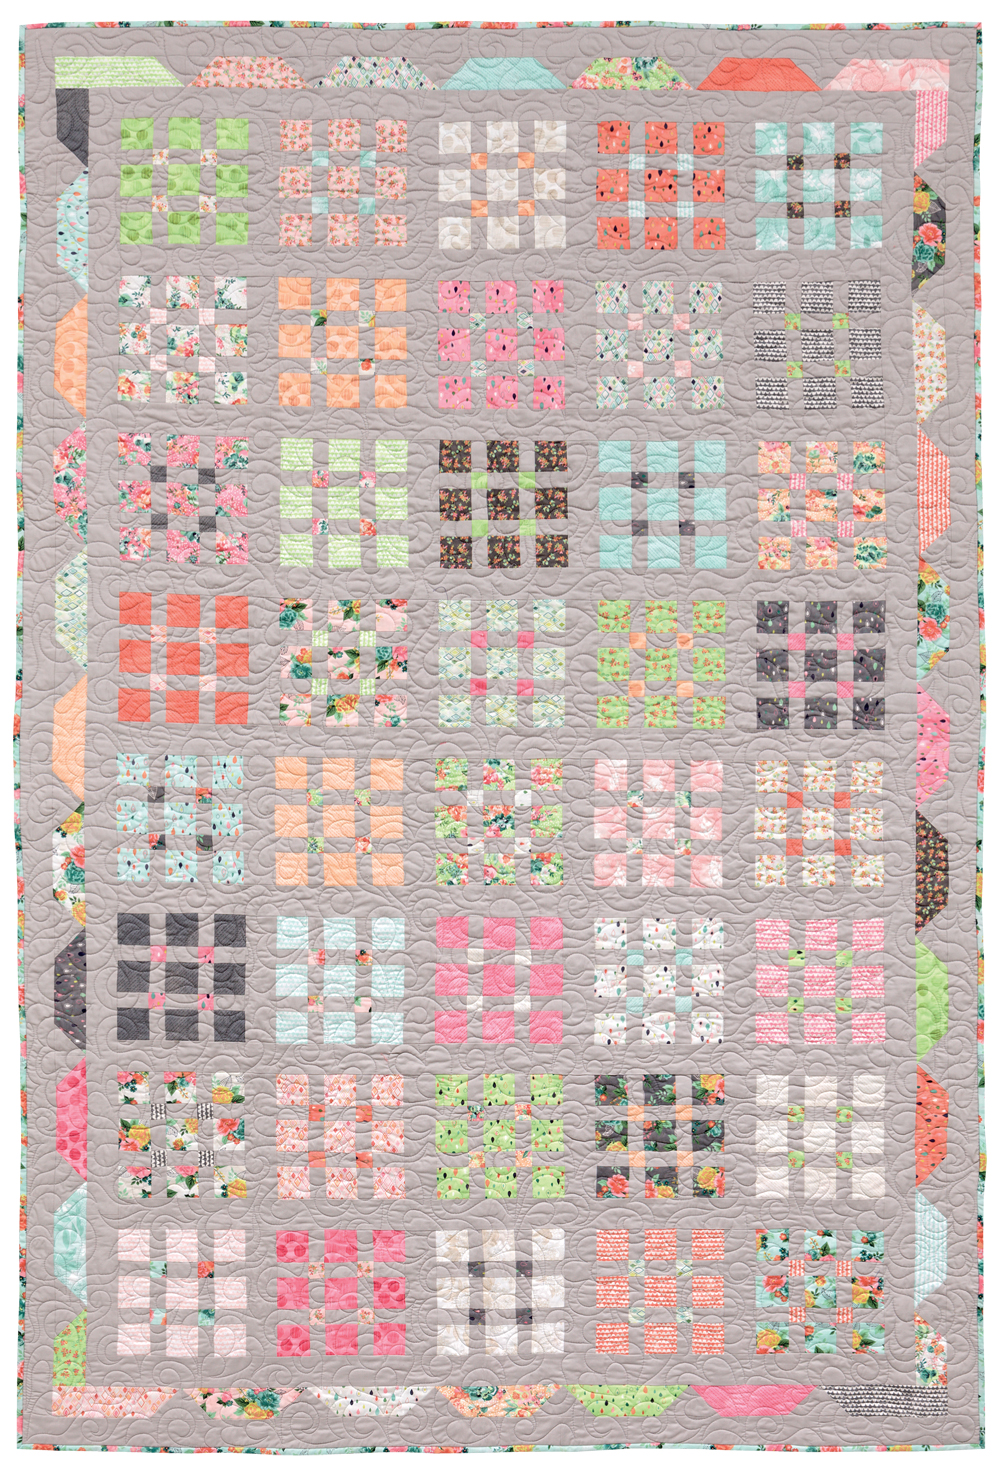 On the Grid quilt